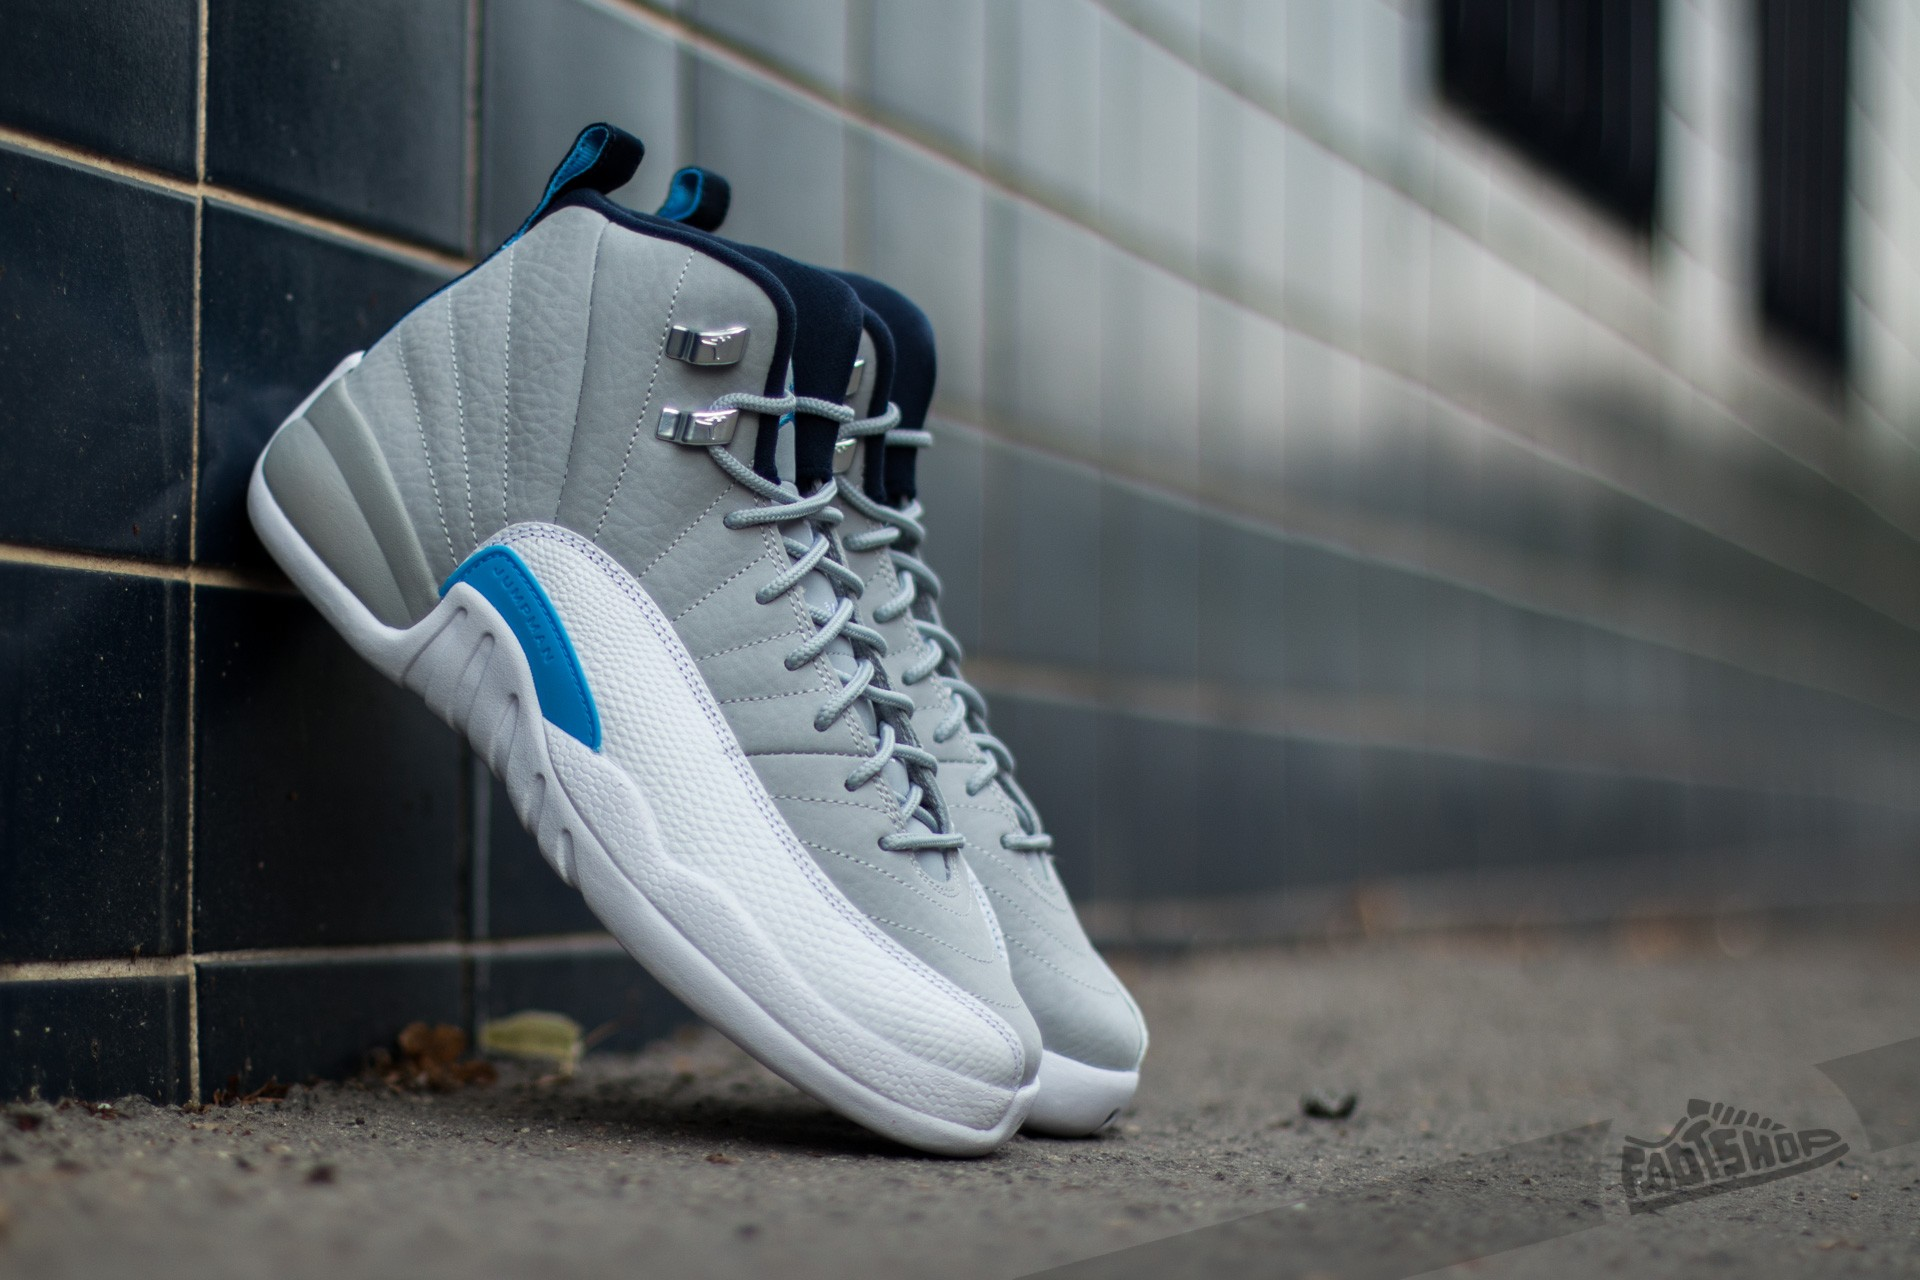 Air Jordan 12 Retro (BG) Wolf Grey/ University Blue-White-Mid Navy - 9659